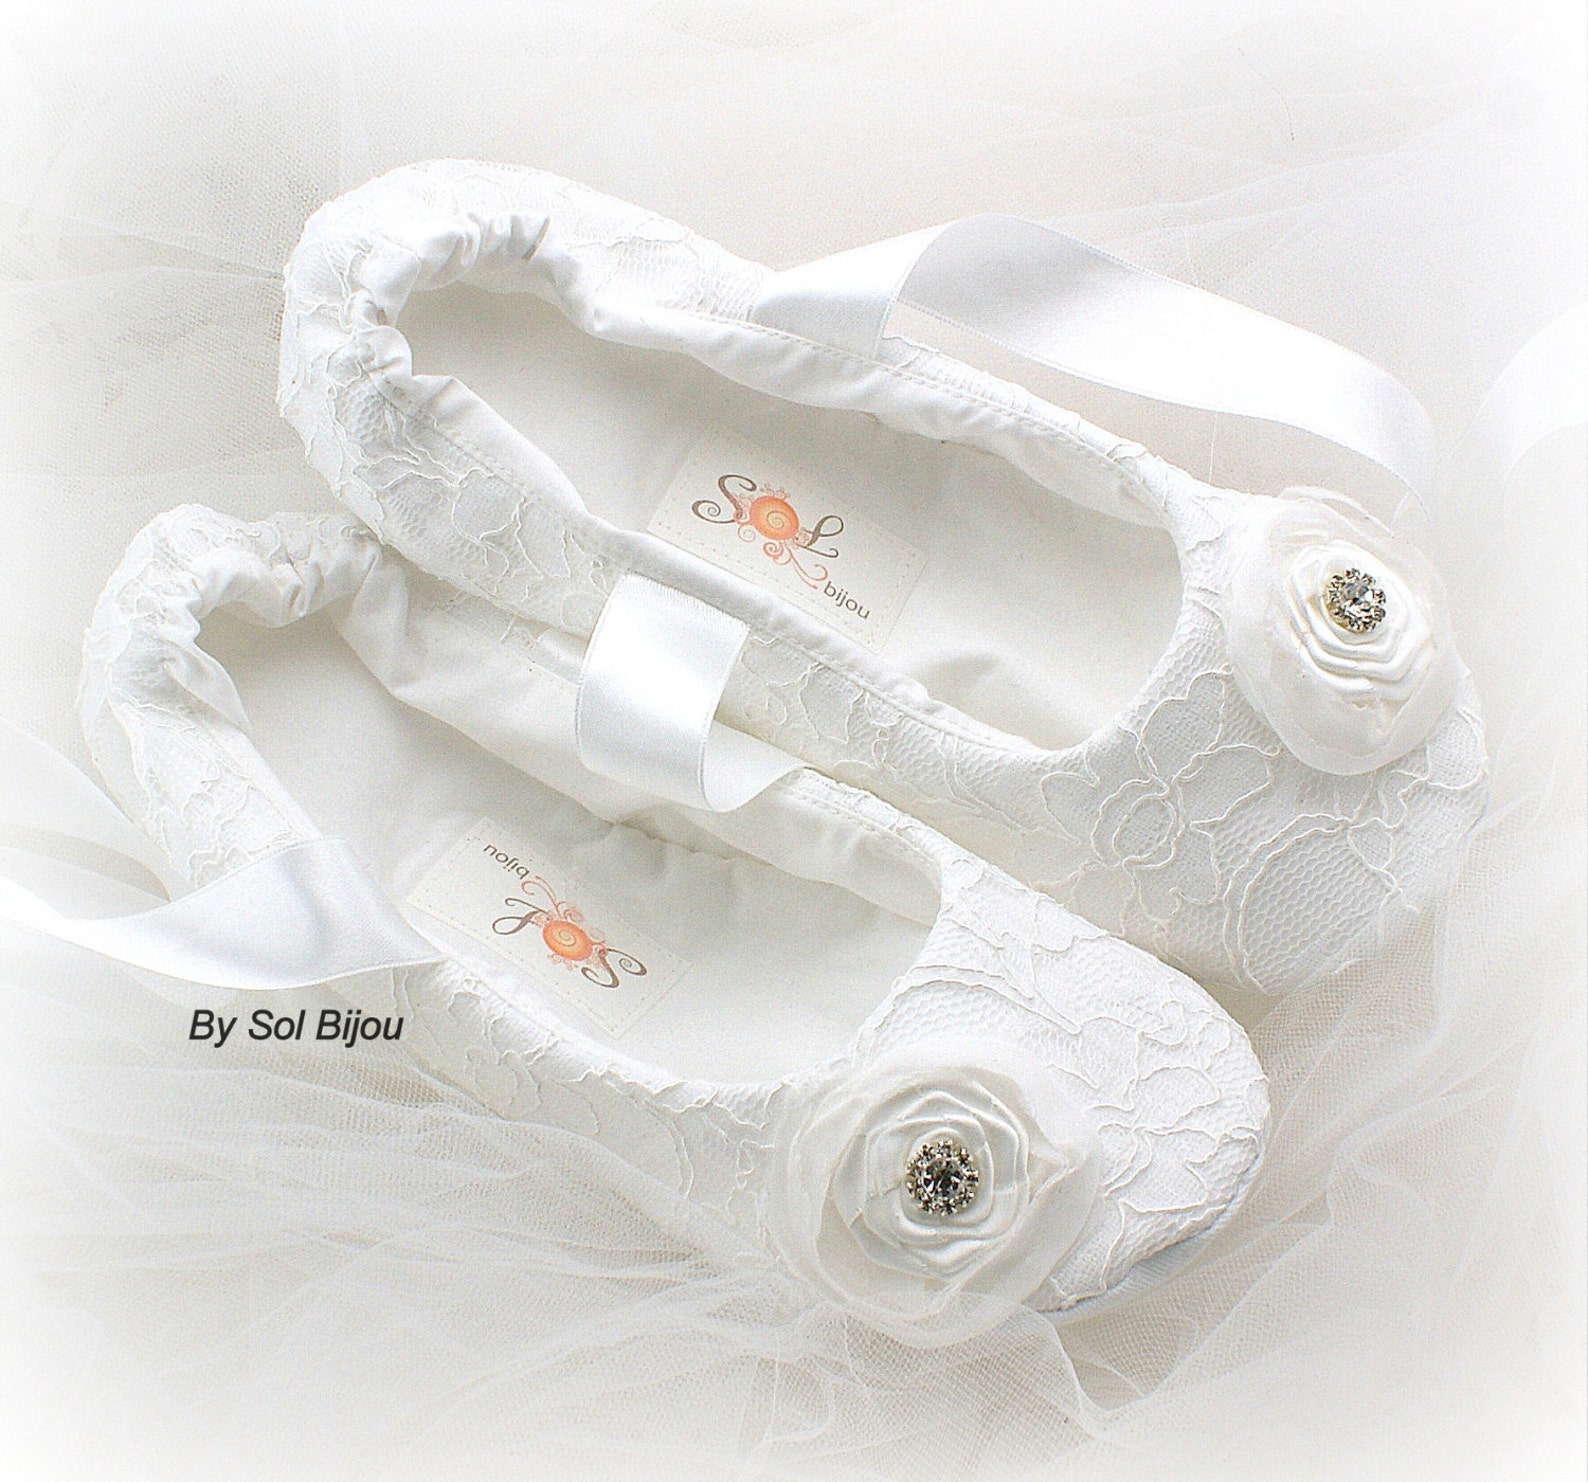 white ballet flats,custom wedding flats,ballet slippers,white lace flats,flower girl flats,first communion,elegant wedding,vinta